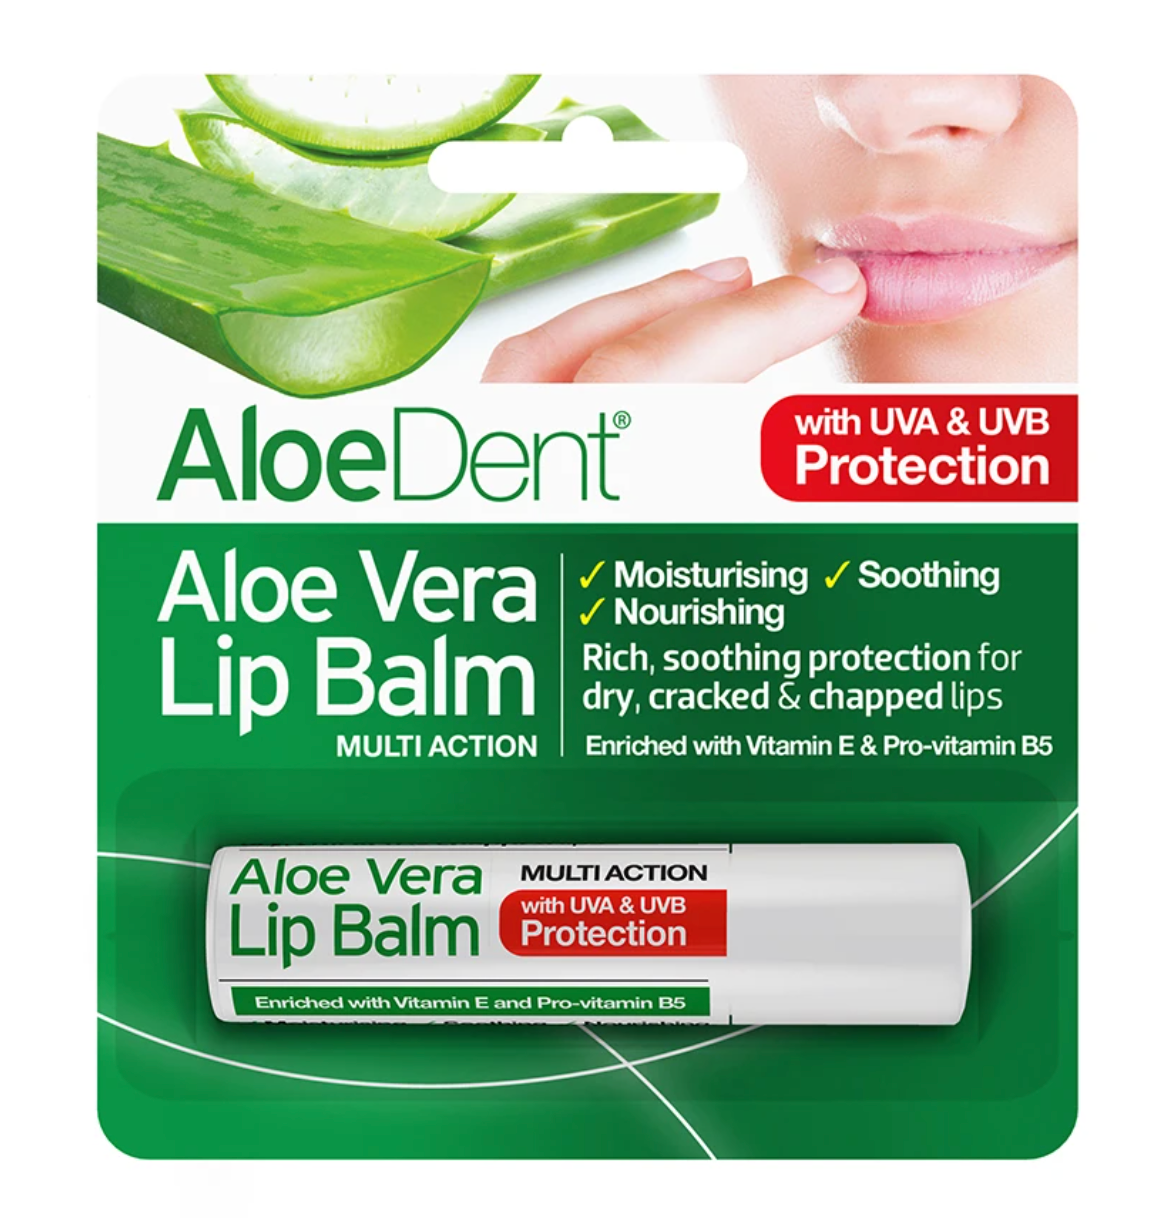 AloeDent® Aloe Vera Lip Balm 4g (Pack of 3)